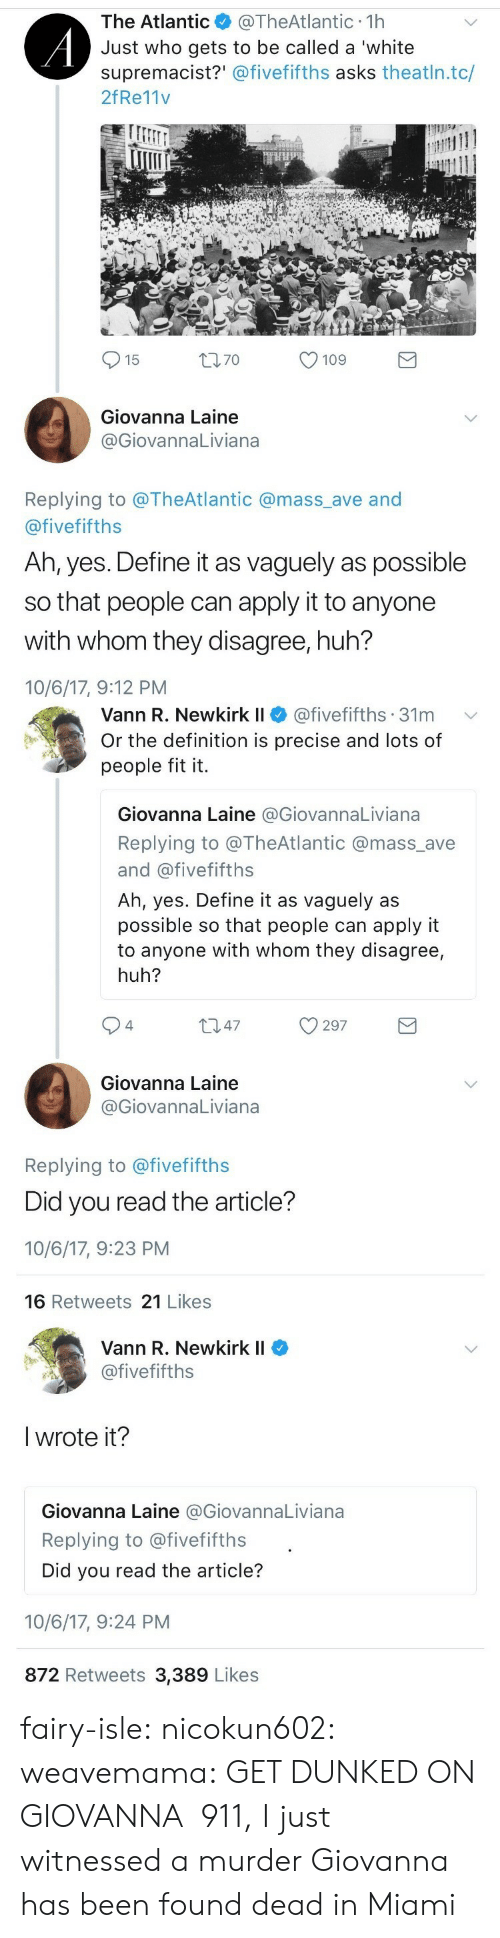 dunked on: The Atlantic@TheAtlantic 1h  Just who gets to be called a 'white  supremacist?' @fivefifths asks theatln.tc/  2fRe11v  15  t70  109  Giovanna Laine  GiovannaLiviana  Replying to @TheAtlantic @mass_ave and  @fivefifths  Ah, yes. Define it as vaguely as possible  so that people can apply it to anyone  with whom they disagree, huh?  10/6/17, 9:12 PM   Vann R. Newkirkli $ @fivefifths. 31 m  Or the definition is precise and lots of  people fit it.  ﹀  Giovanna Laine @GiovannaLiviana  Replying to @TheAtlantic @mass_ave  and @fivefifths  Ah, yes. Define it as vaguely as  possible so that people can apply it  to anyone with whom they disagree,  huh?  94  Giovanna Laine  @GiovannaLiviana  Replying to @fivefifths  Did you read the article?  10/6/17, 9:23 PM  16 Retweets 21 Likes   Vann R. Newkirk II  @fivefifths  l wrote it?  Giovanna Laine @GiovannaLiviana  Replying to @fivefifths  Did you read the article?  10/6/17, 9:24 PM  872 Retweets 3,389 Likes fairy-isle:  nicokun602:   weavemama:  GET DUNKED ON GIOVANNA  911, I just witnessed a murder    Giovanna has been found dead in Miami